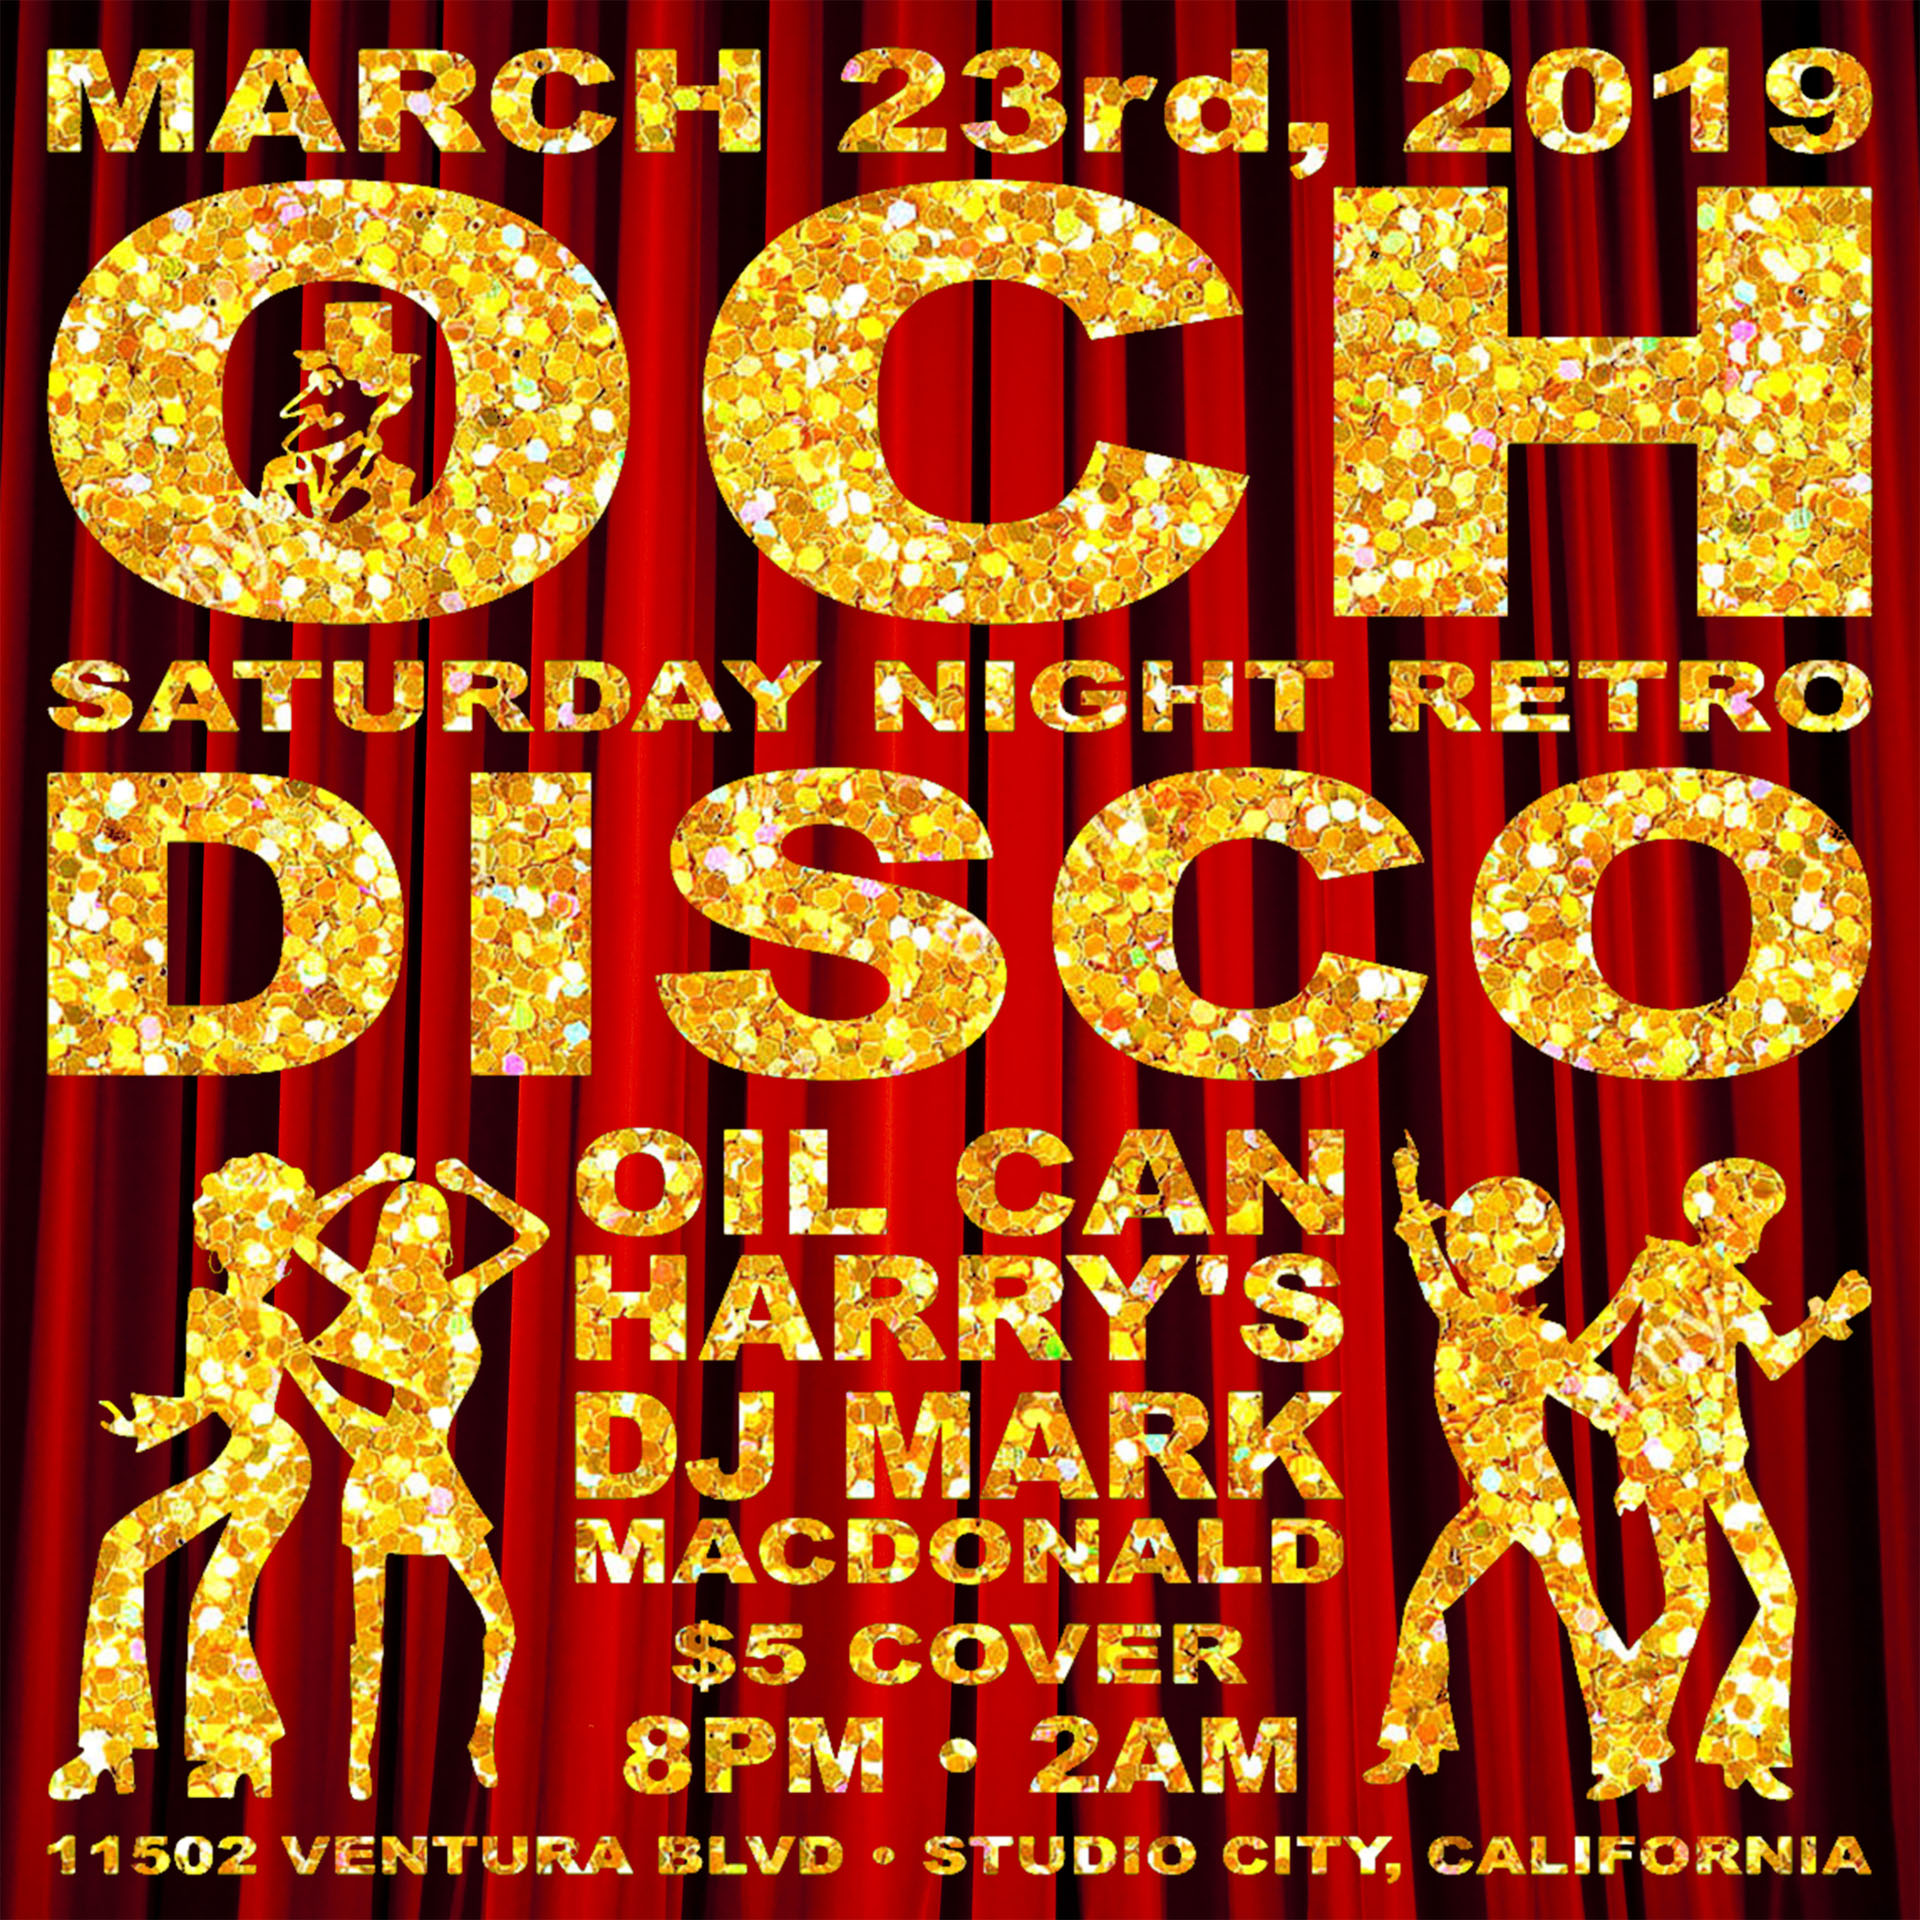 Oil Can Harry's Hosts DJ MARK MACDONALD from Las Vegas for RETRO DISCO: Saturday, March 23, 2019! 8:00 PM to 2:00 AM! $5.00 Cover.